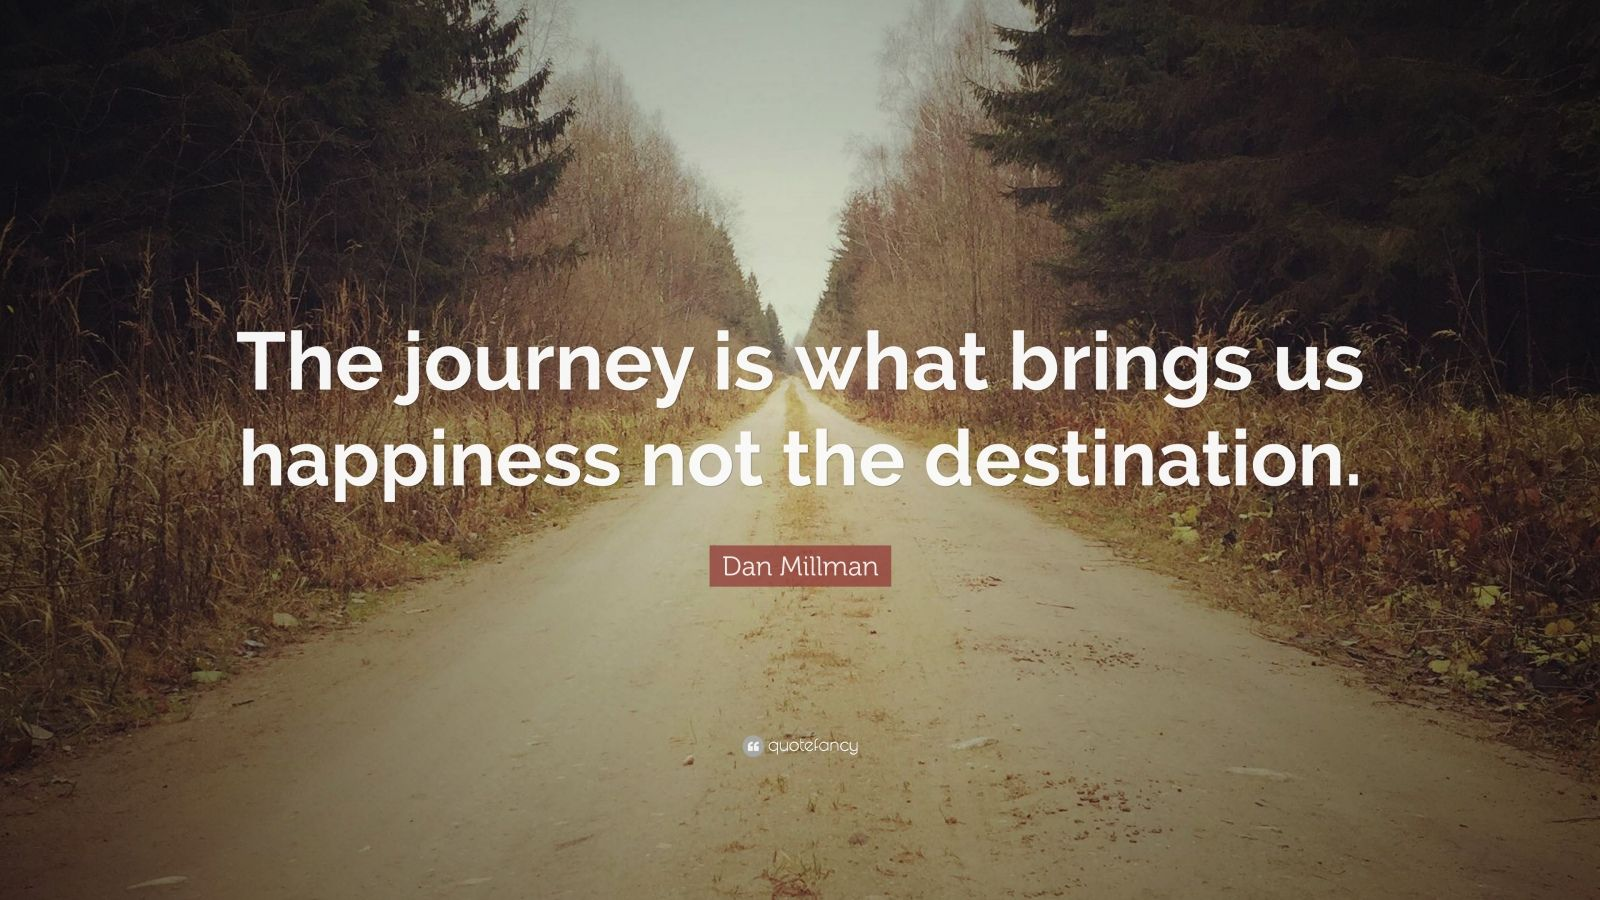 Immanuel Kant Quote Wallpaper Dan Millman Quote The Journey Is What Brings Us